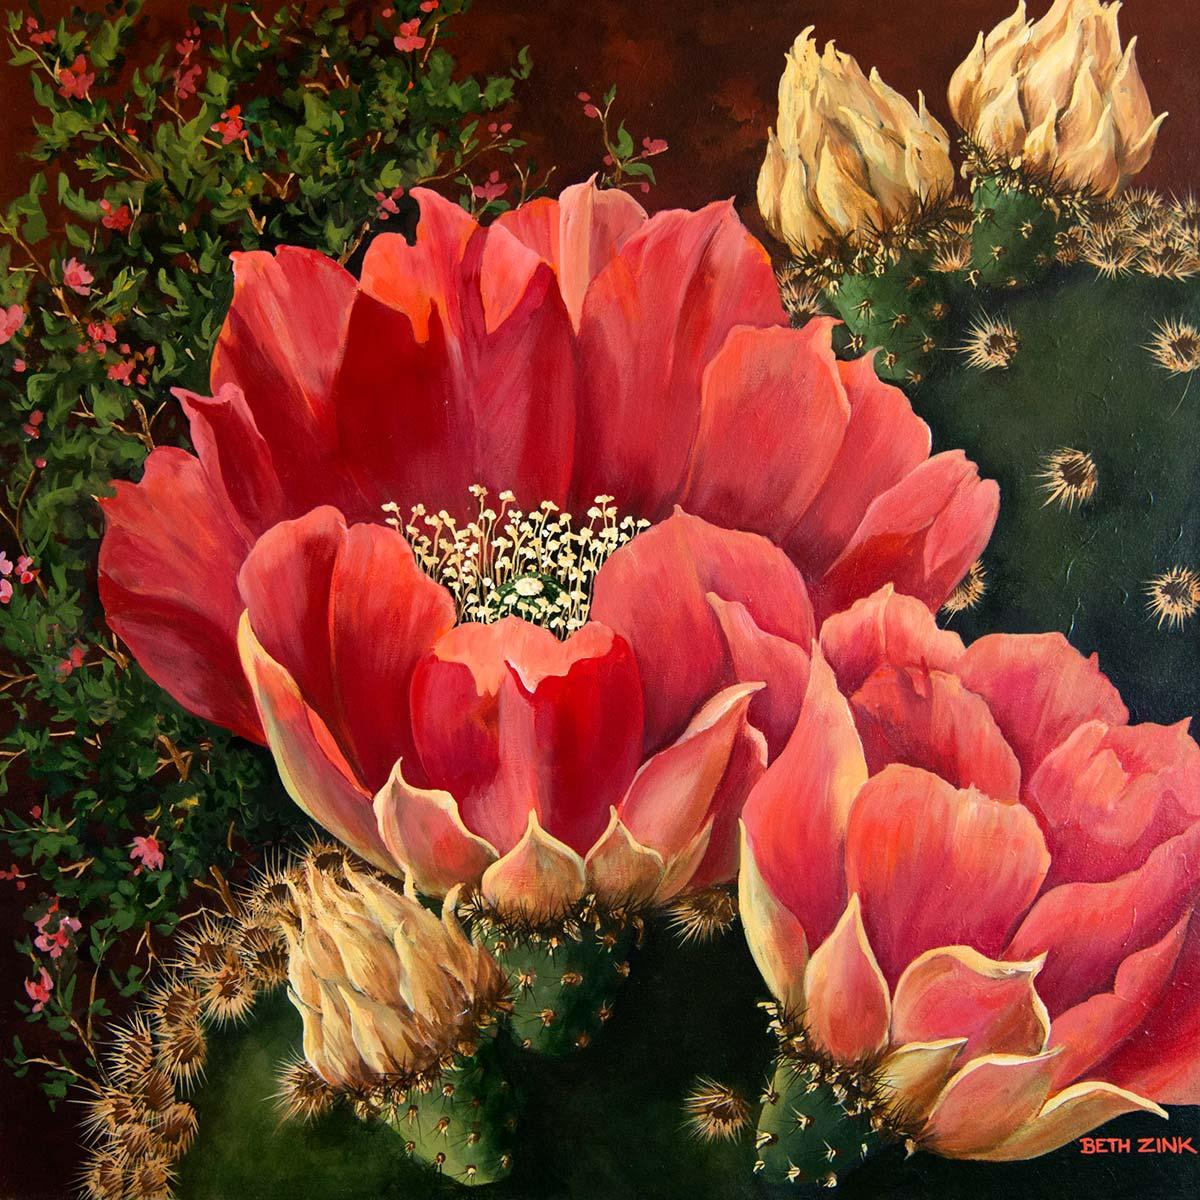 beth zink painting cactus with pink and white flowers